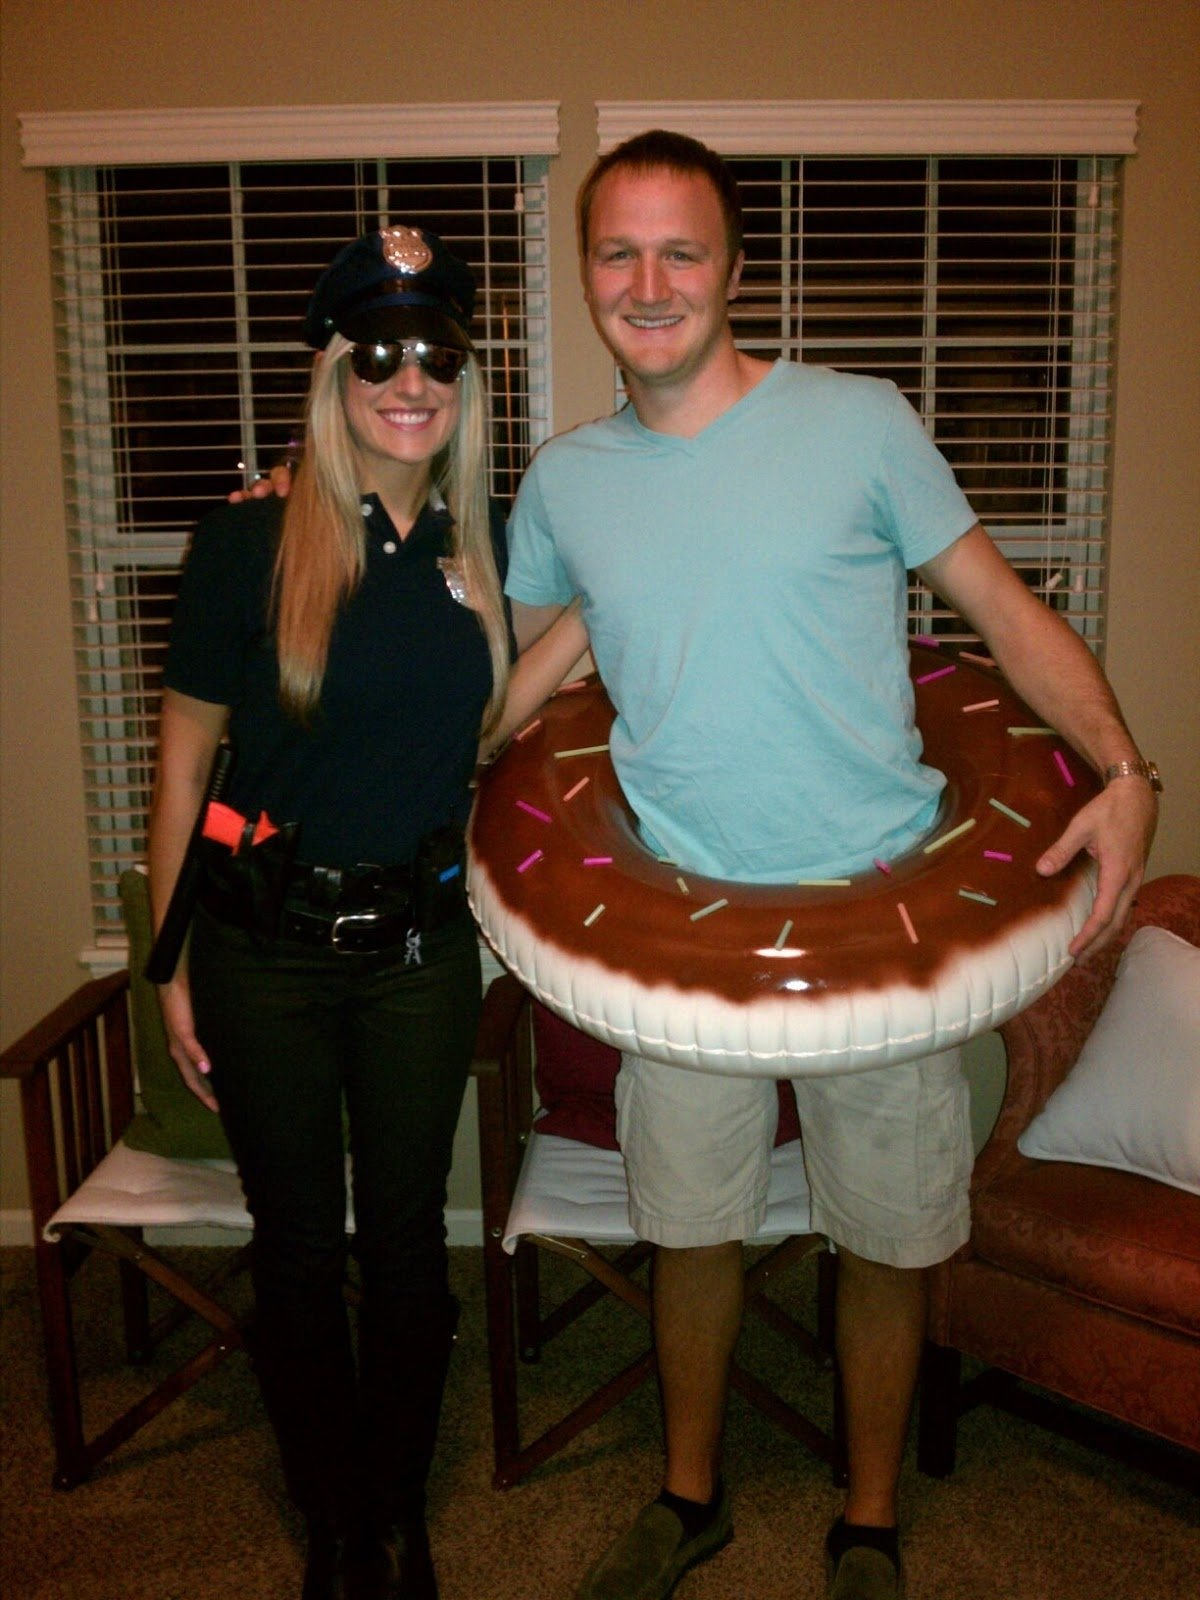 10 Most Popular Funny Couples Halloween Costume Ideas 57 couples diy costumes 12 diy halloween costumes for couples 3 2021